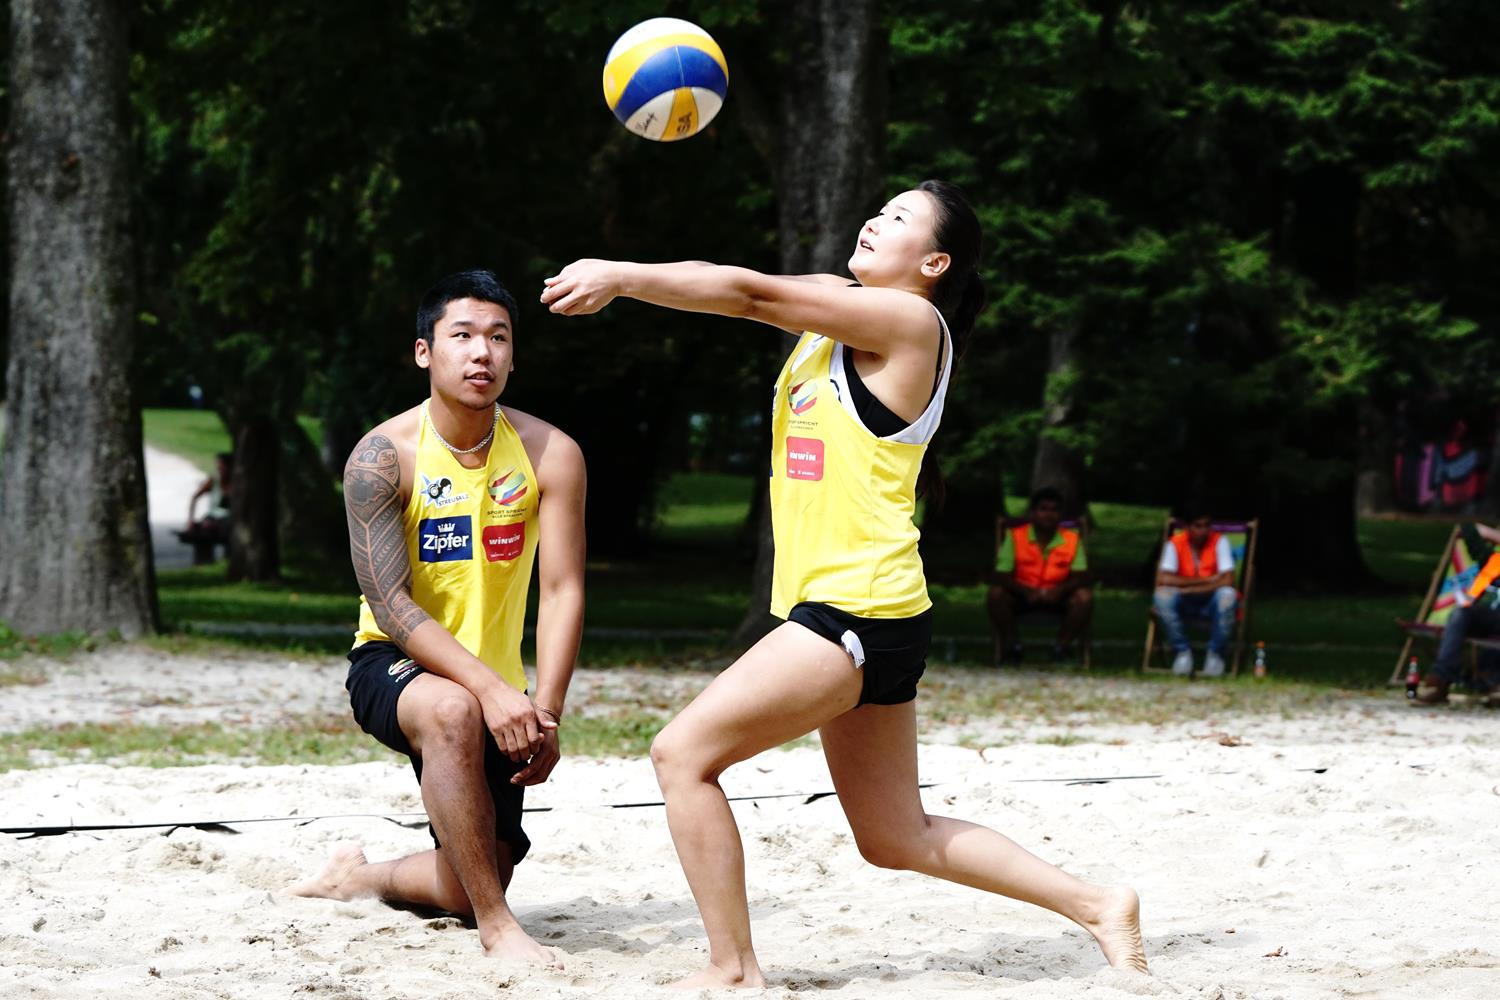 20160904_FMT_SSAS_ Vollyball_KJ (1) (Copy)